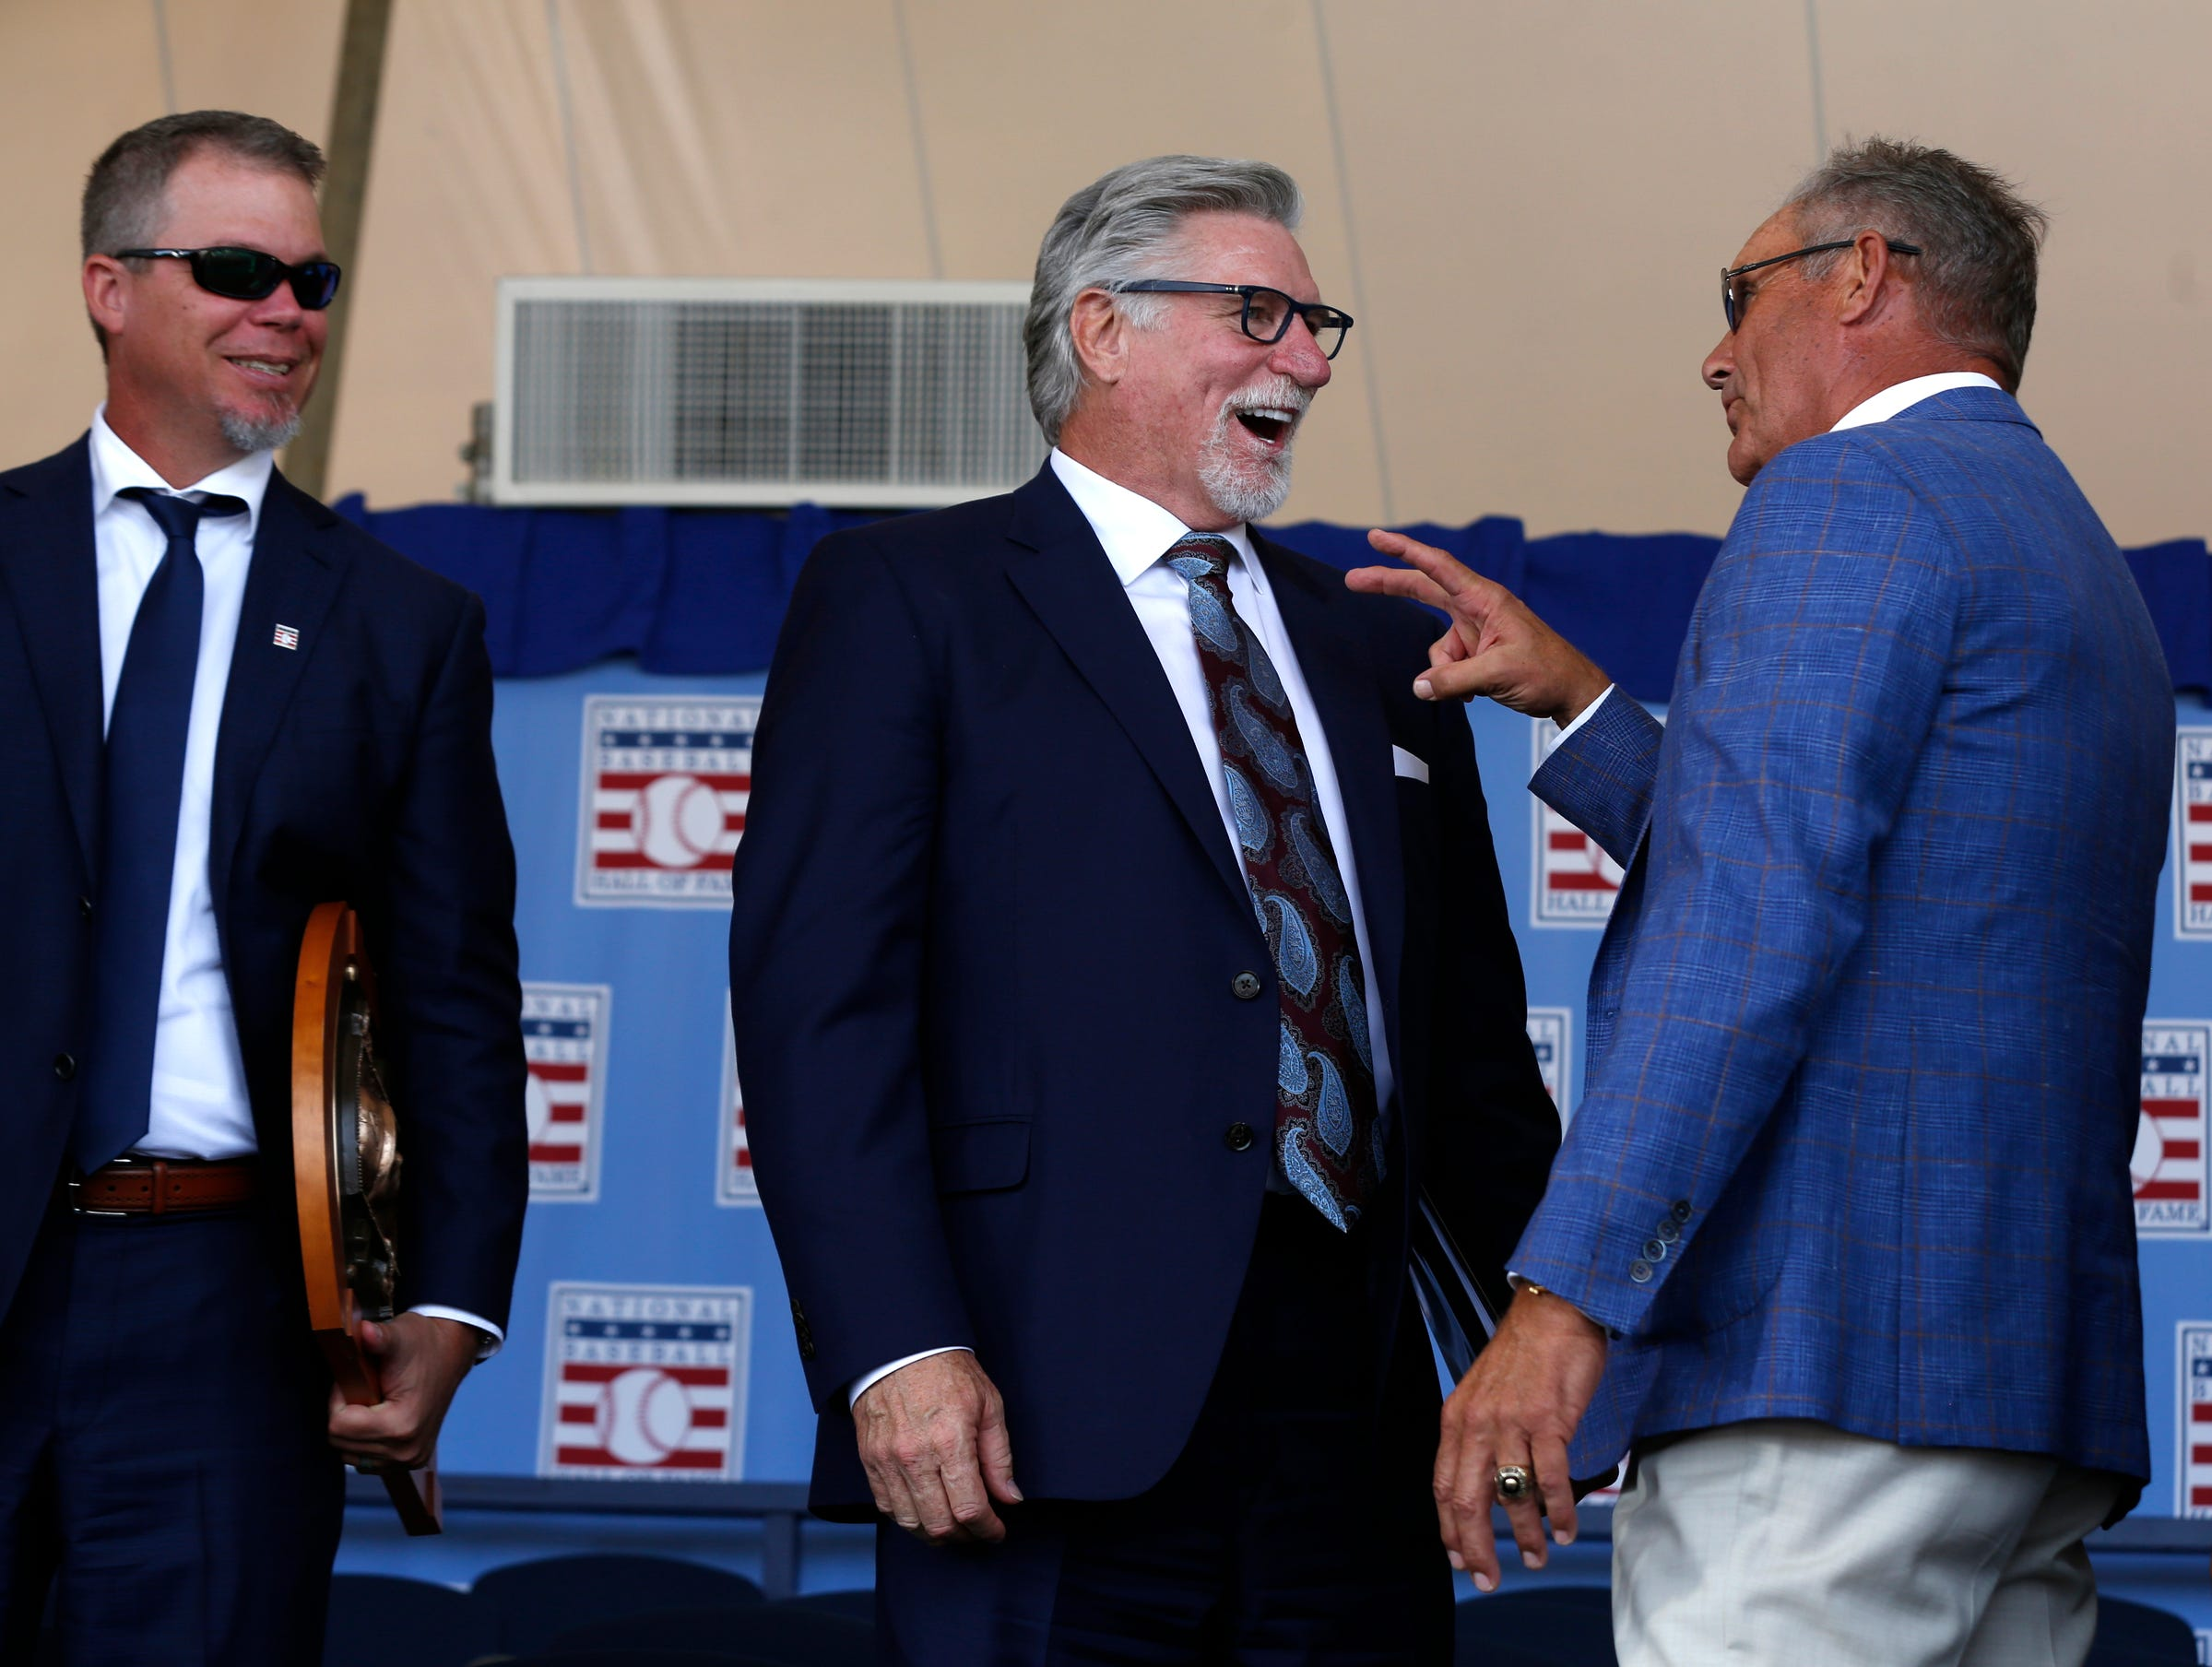 As newest Baseball Hall of Fame member and Atlanta Braves great Chipper Jones looks on fellow inductee Jack Morris laughs when talking with fellow Hall of Famer George Brett after the ceremony was over at the Clark Sports Center during the National Baseball Hall of Fame induction ceremony in Cooperstown, N.Y. on Sunday, July 29, 2018.